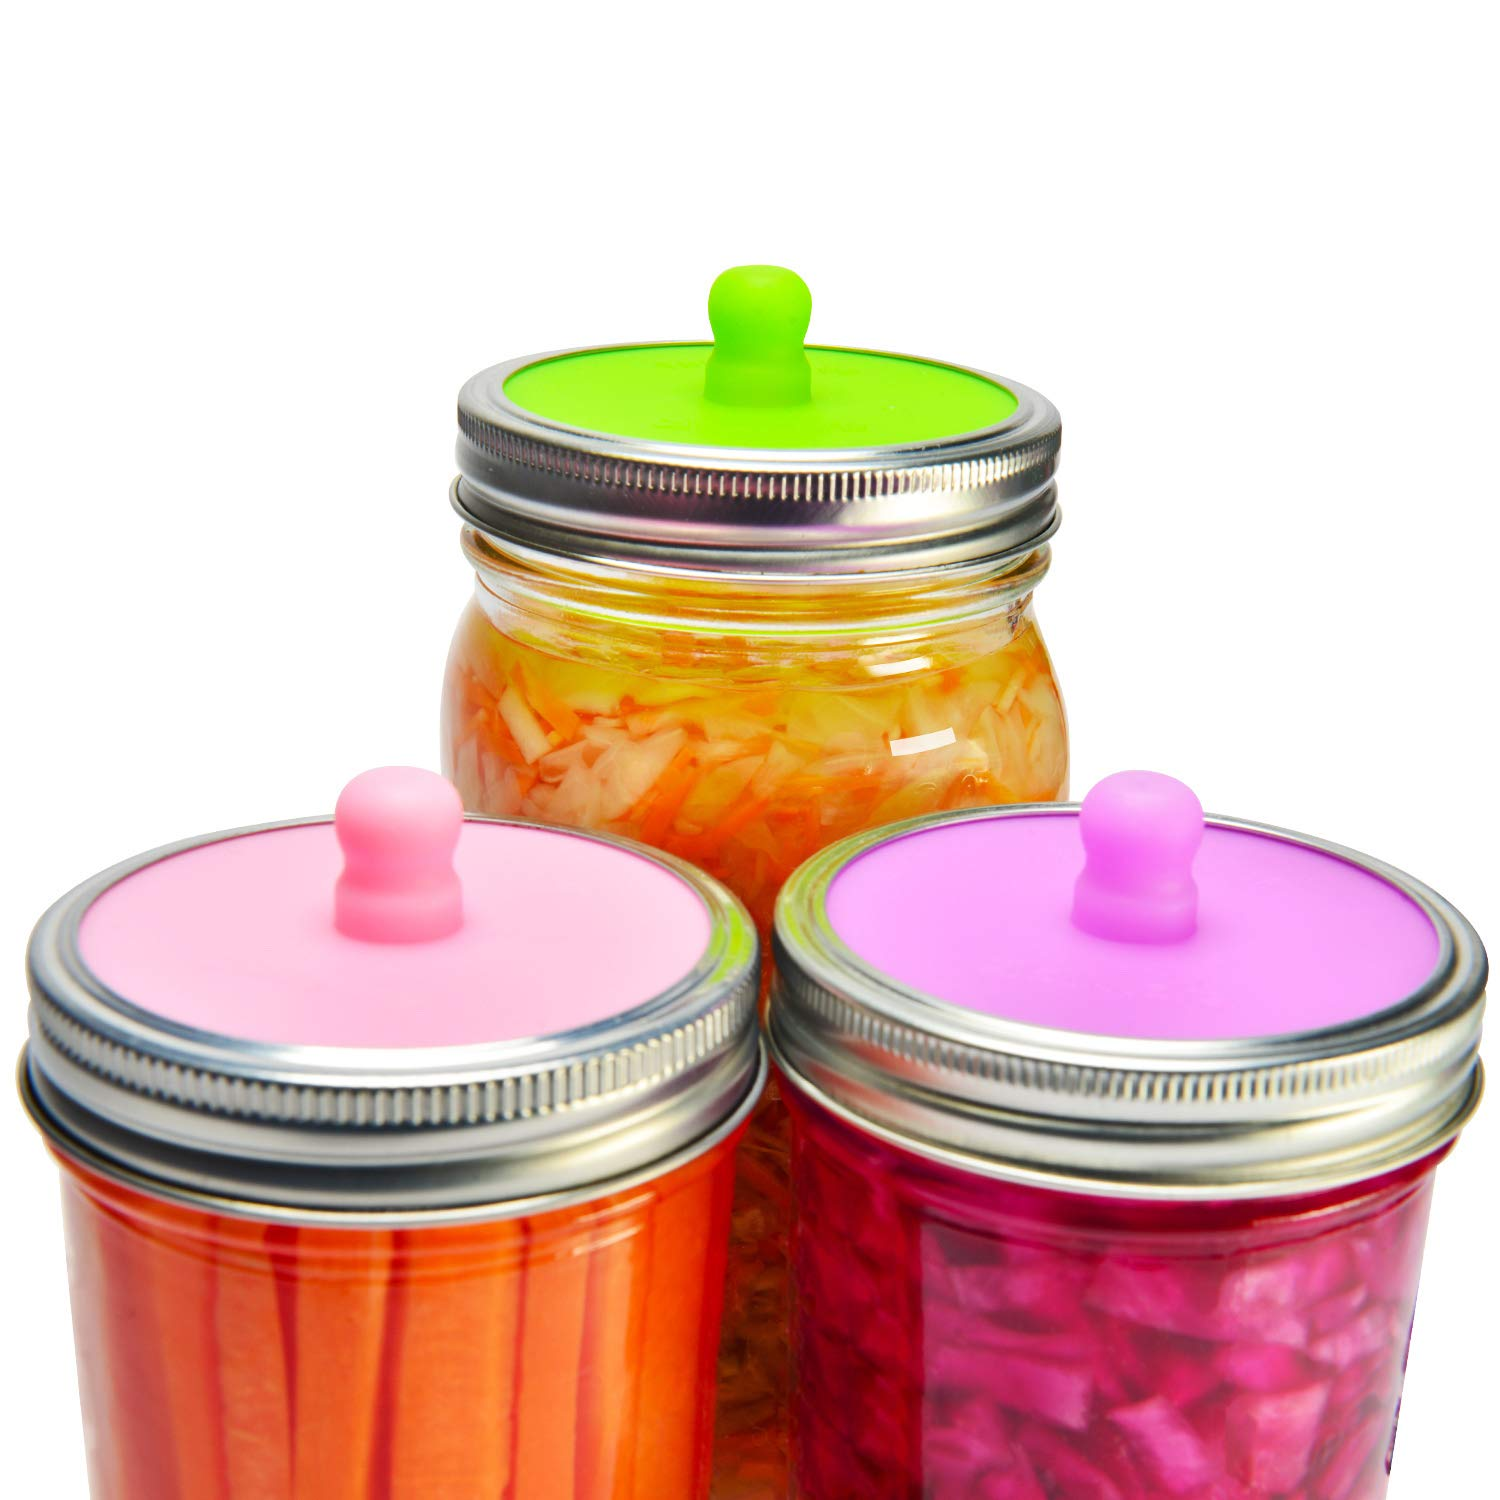 6-Pack Waterless Airlock Fermentation Lids for Wide Mouth Mason Jars, Mold Free, Food-Grade Silicone Easy Fermenting Lids for Sauerkraut, Kimchi, Pickles or Any Fermented Probiotic Food (3 Colors) siliware